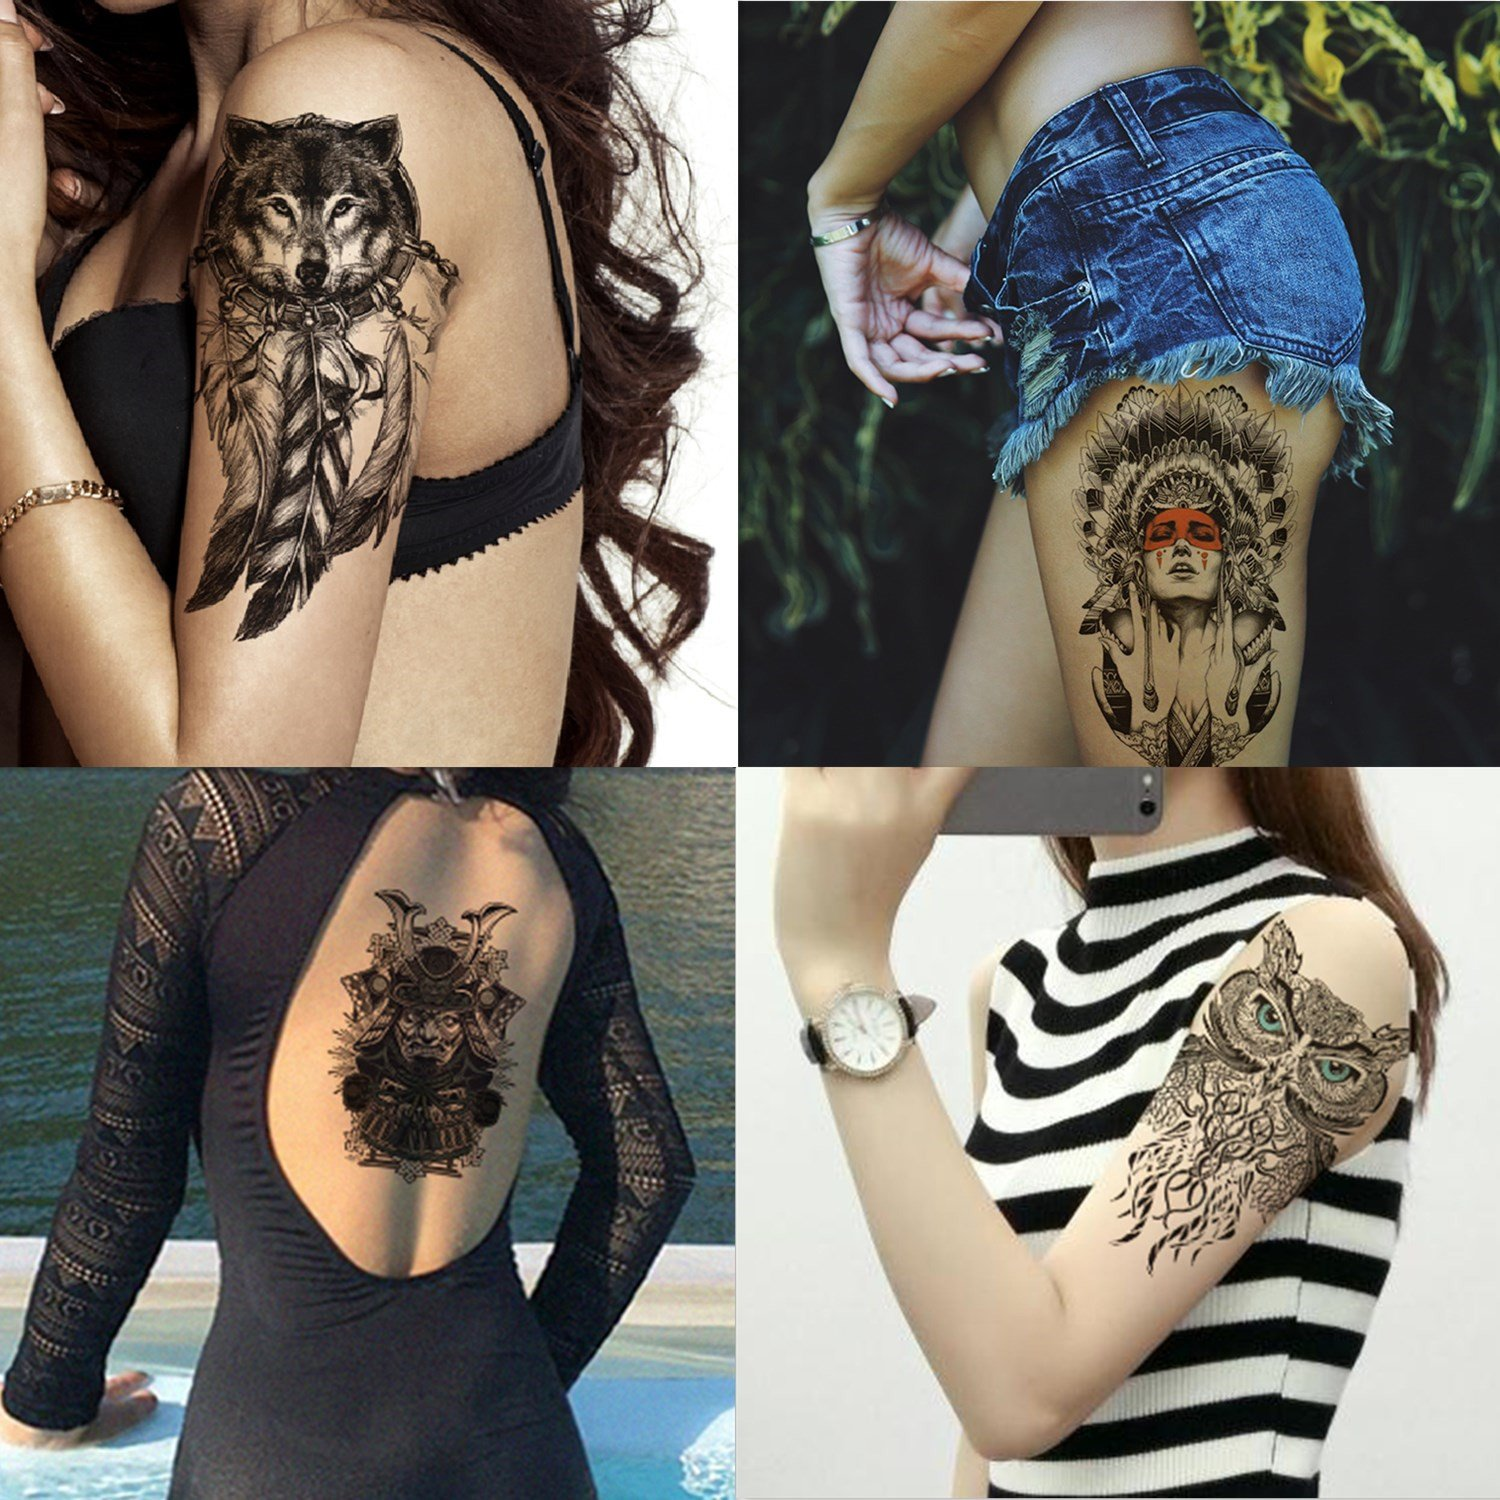 Dalin 4 Sheets Temporary Tattoos Sled Tat Dog Fake Owl 70% OFF Outlet Max 86% OFF Indian